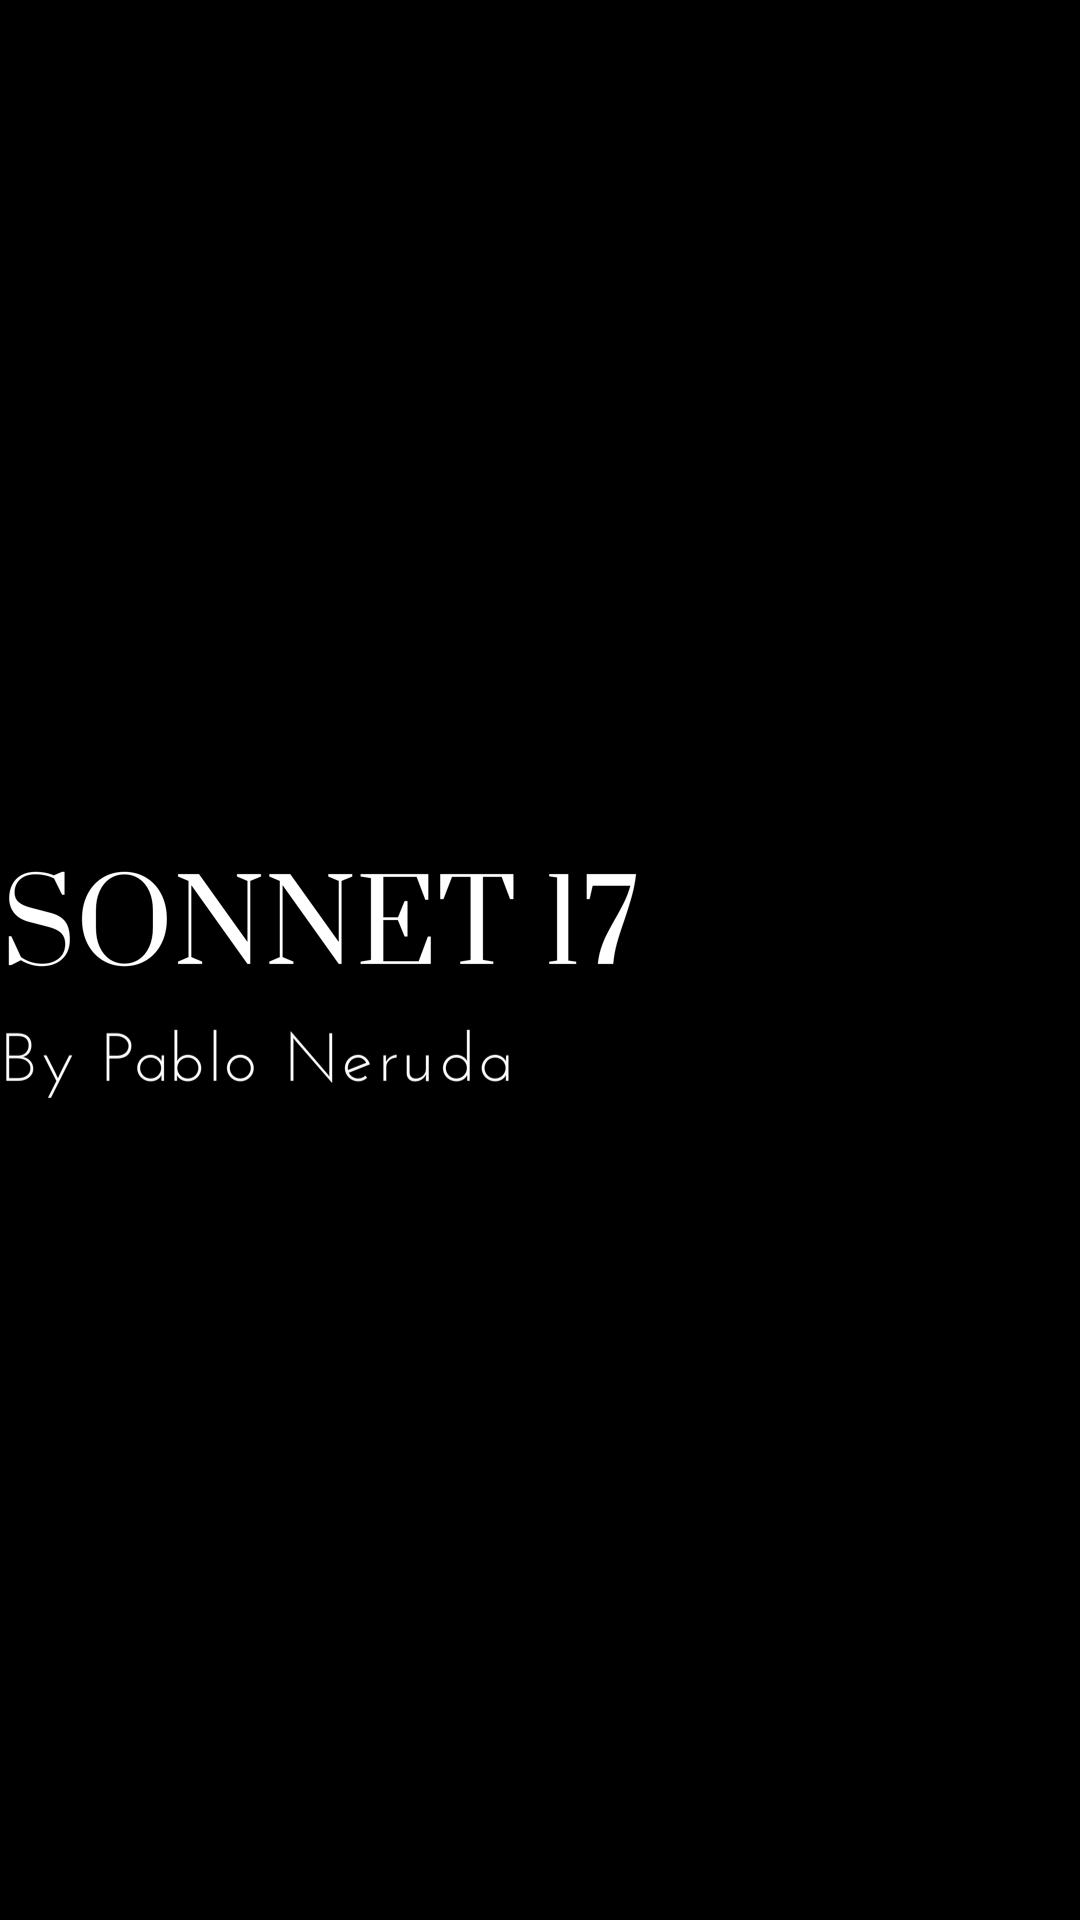 Sonnet 17 by Pablo Neruda